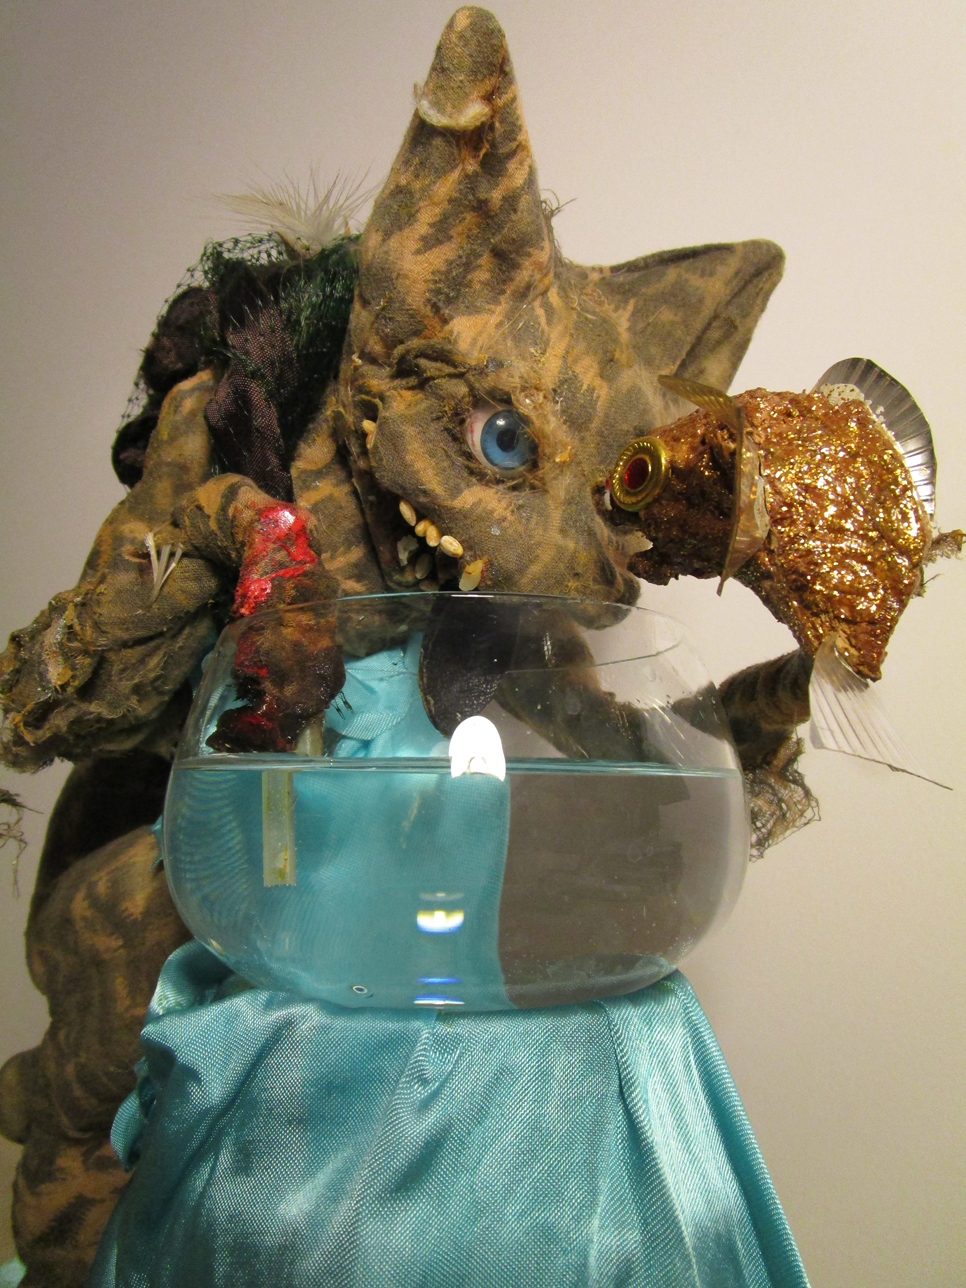 Artistic toy - the toy cat - cat toy - photo 23.